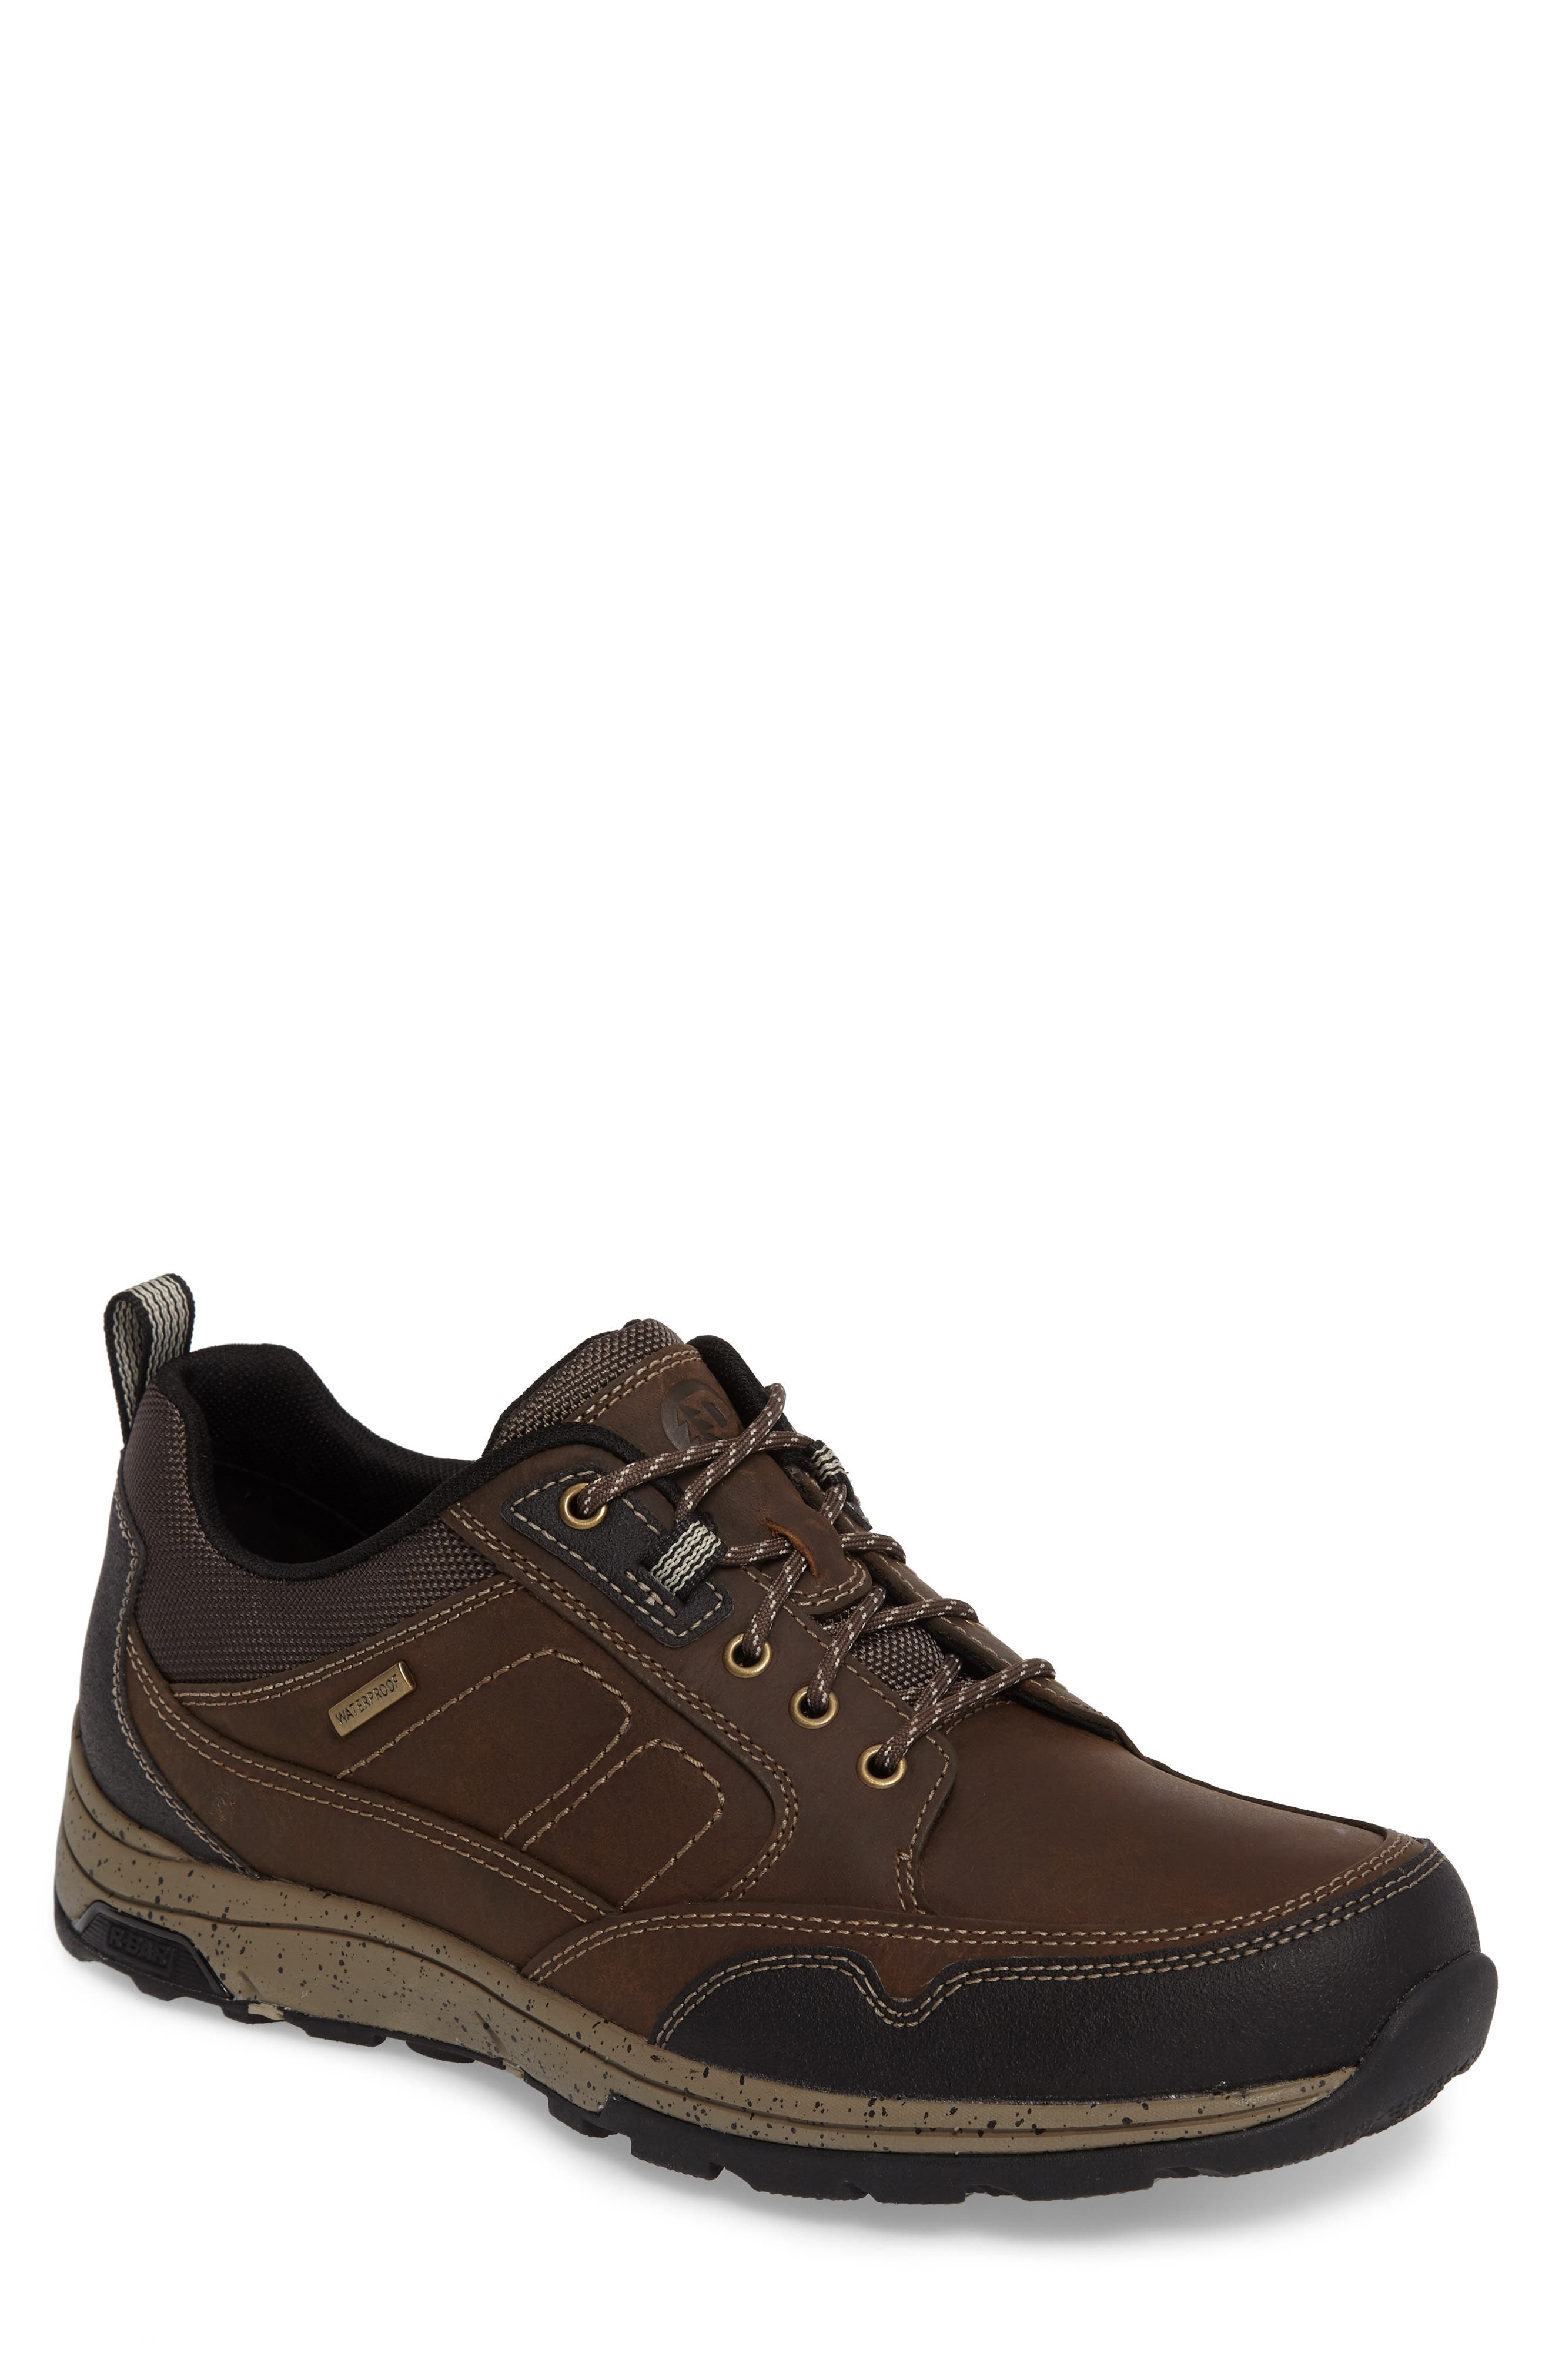 Trukka Hiking Shoe,                             Main thumbnail 1, color,                             TAUPE